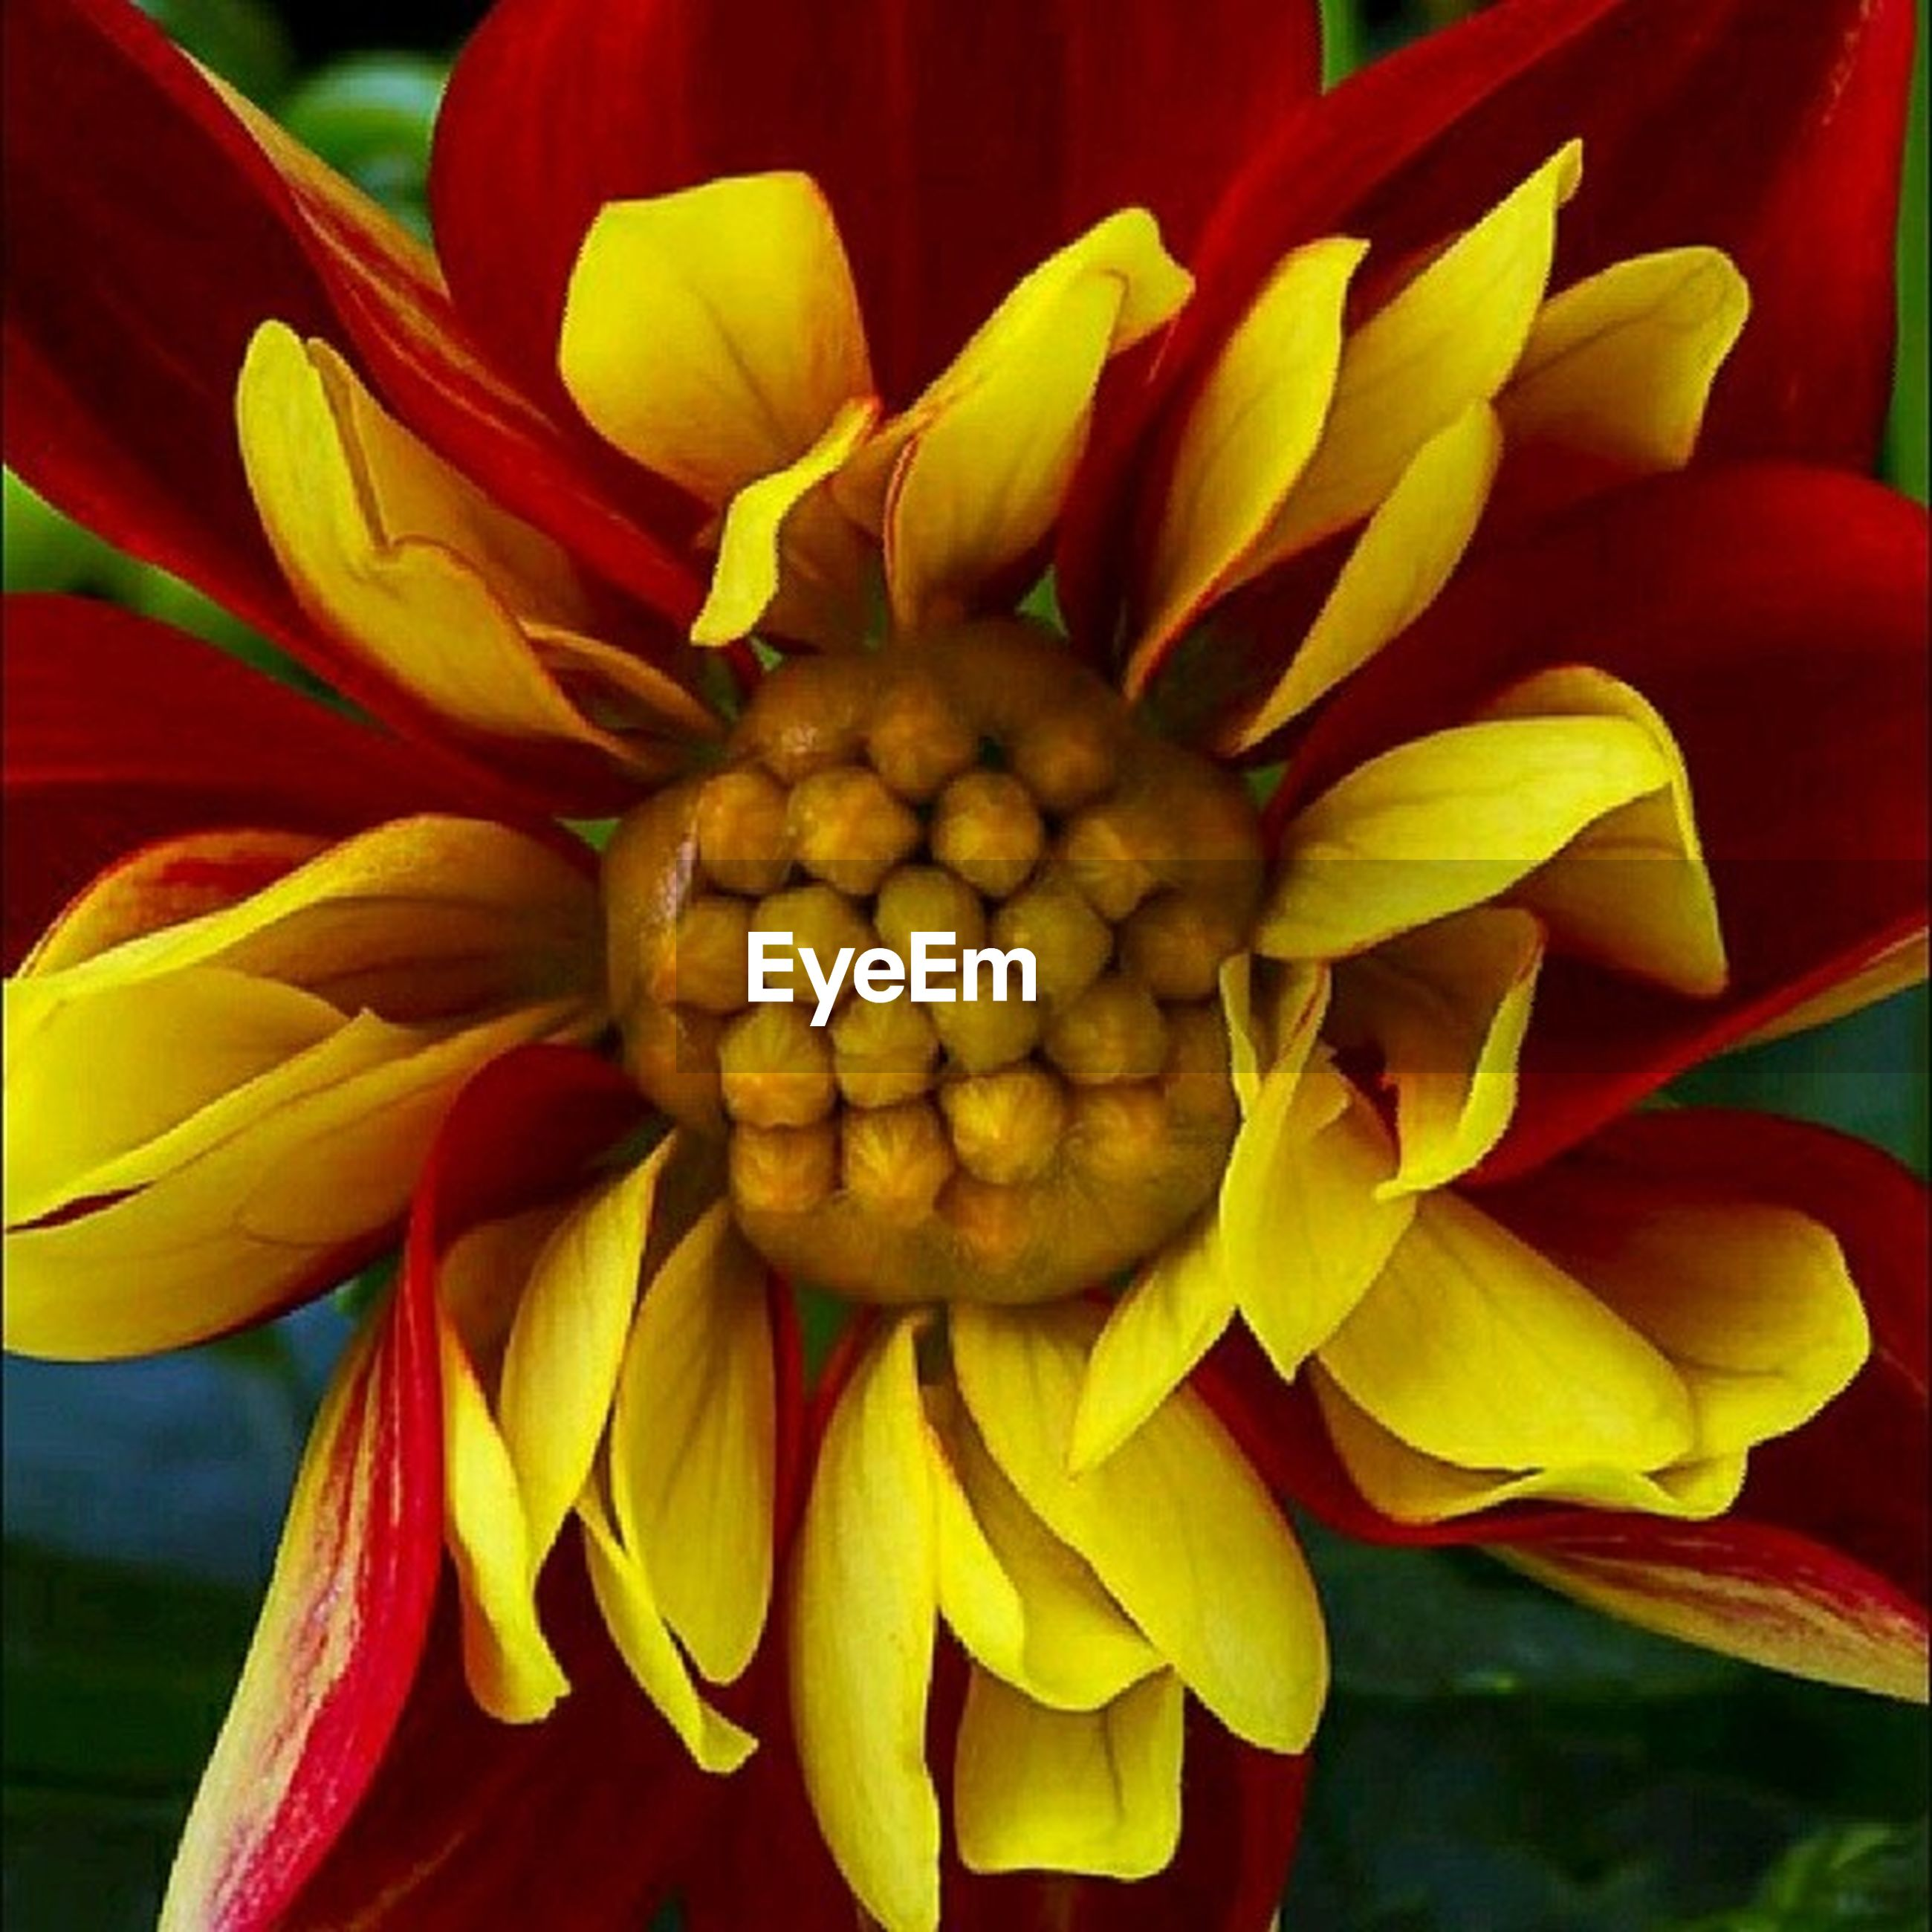 flower, freshness, petal, flower head, fragility, beauty in nature, growth, close-up, yellow, nature, blooming, pollen, tulip, red, plant, focus on foreground, blossom, no people, day, in bloom